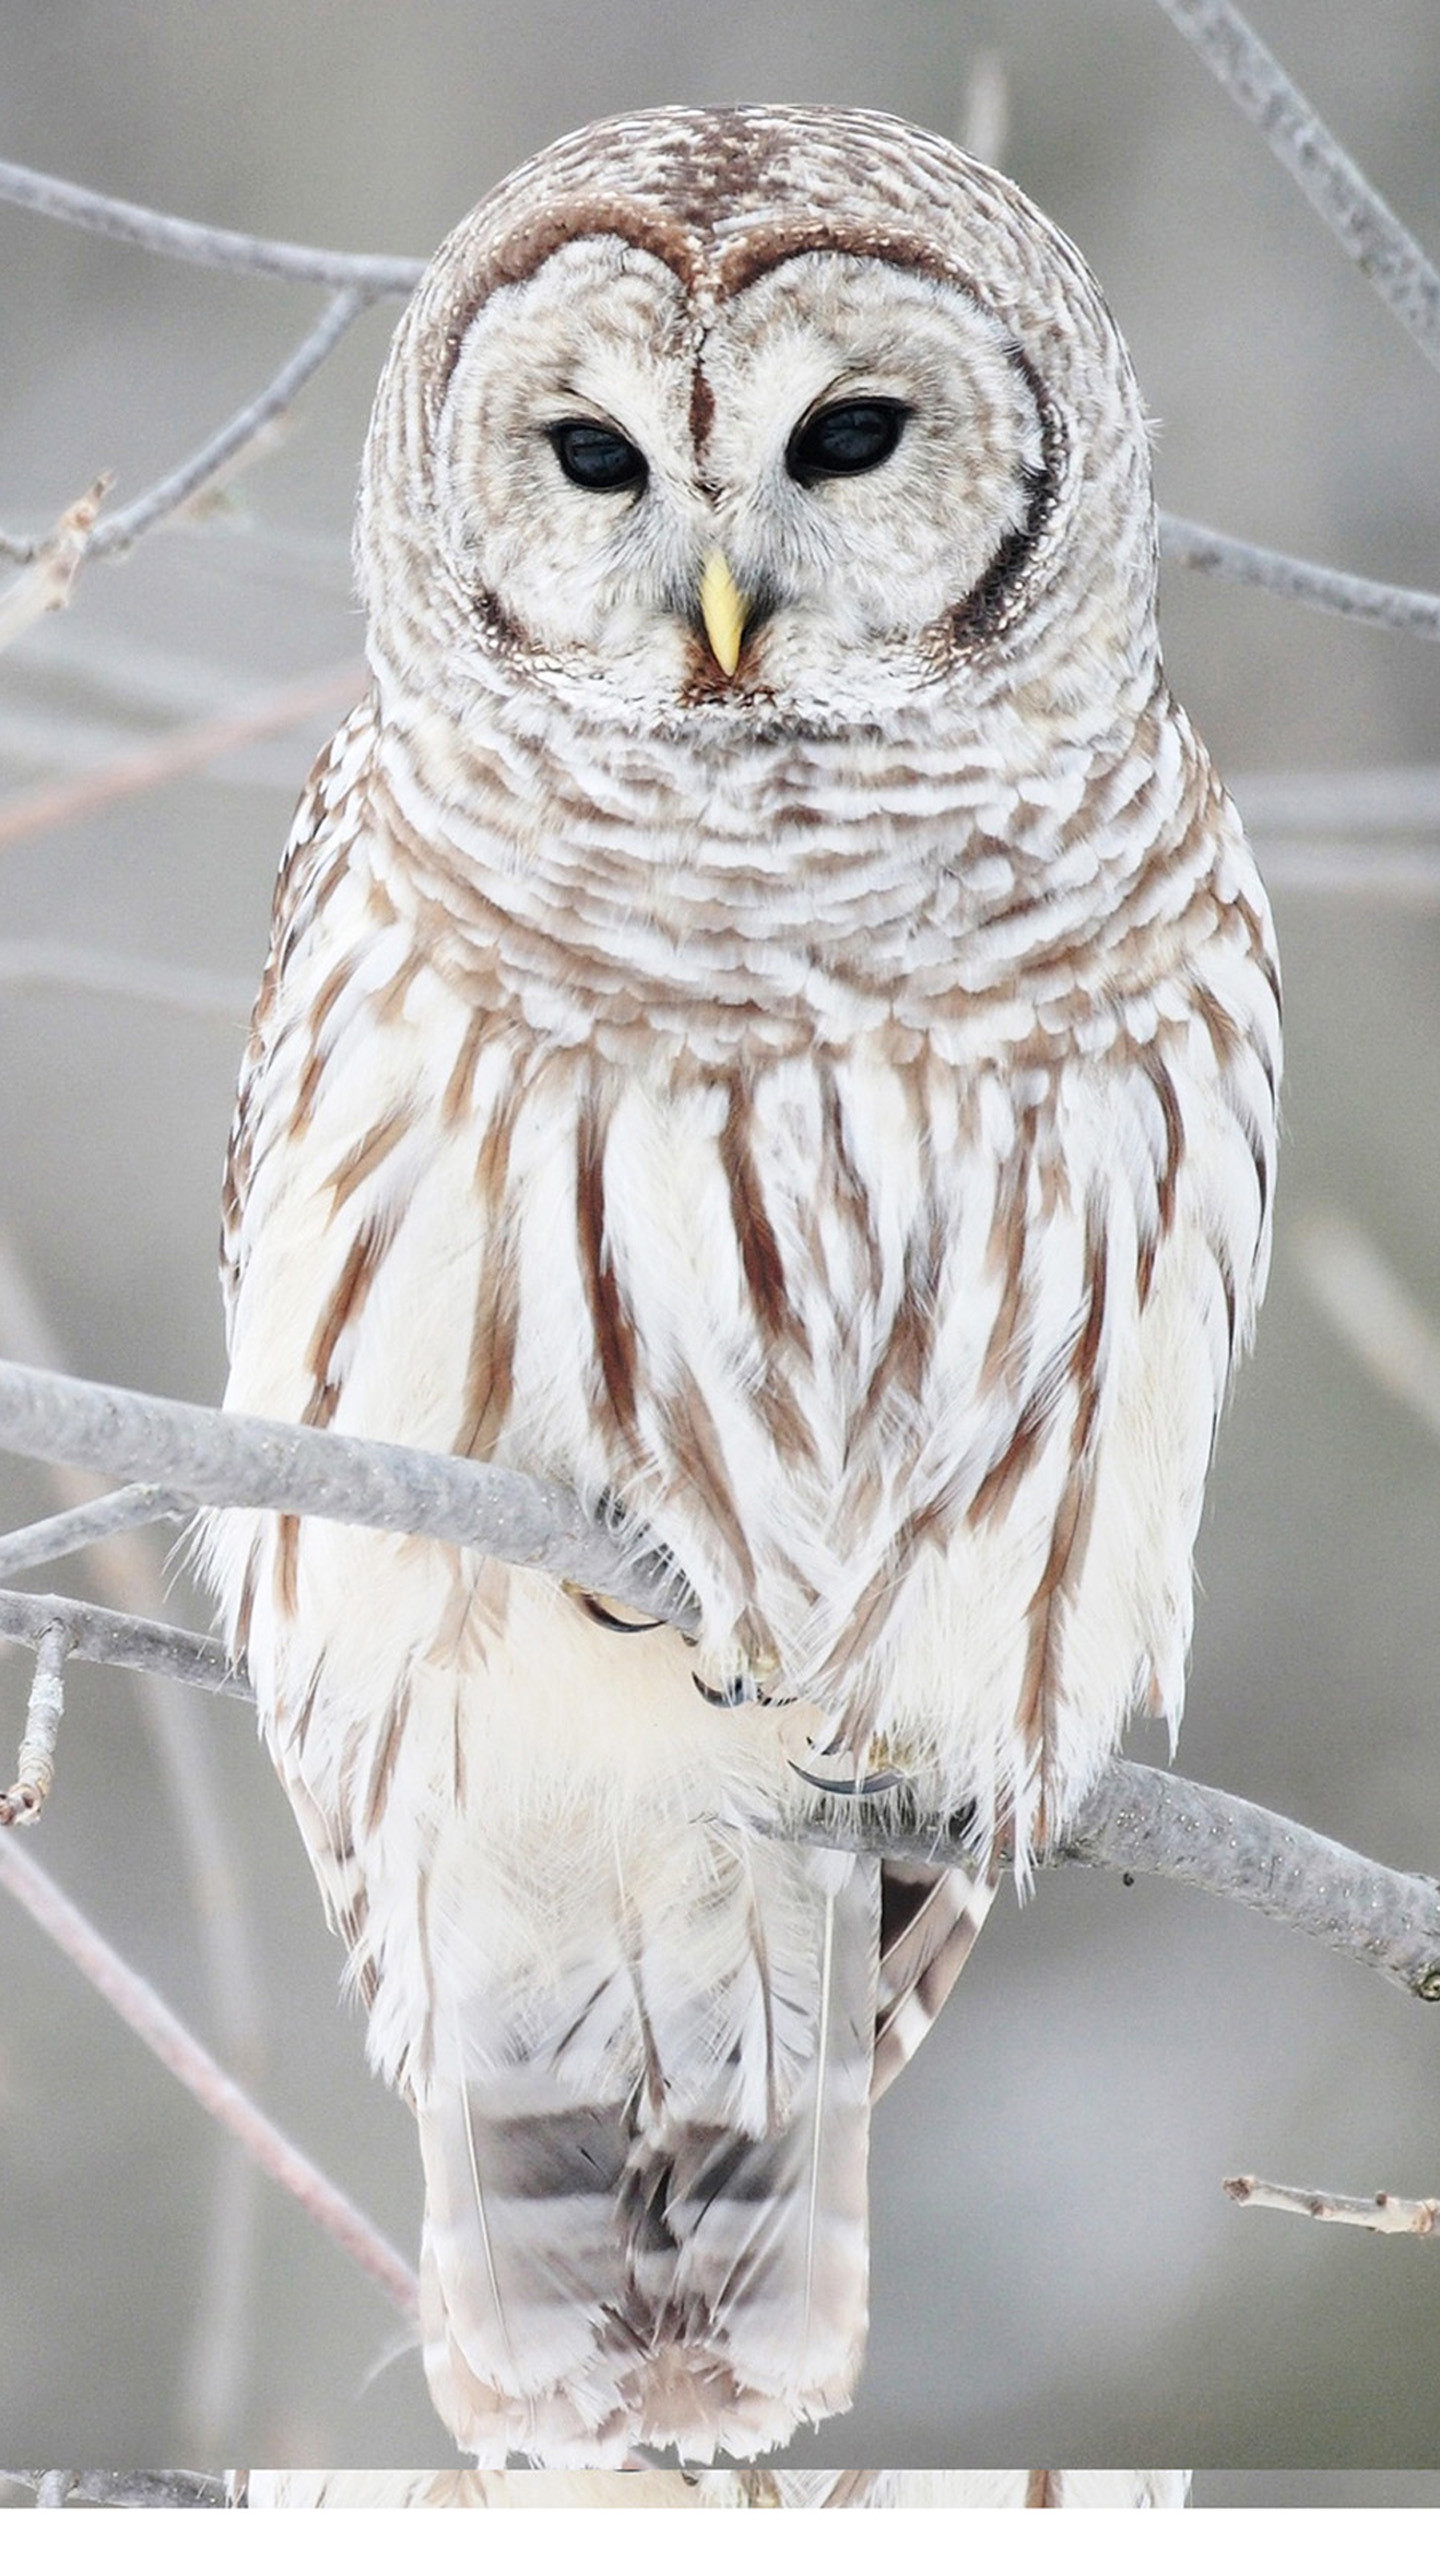 Owl Wallpapers 77+ background pictures